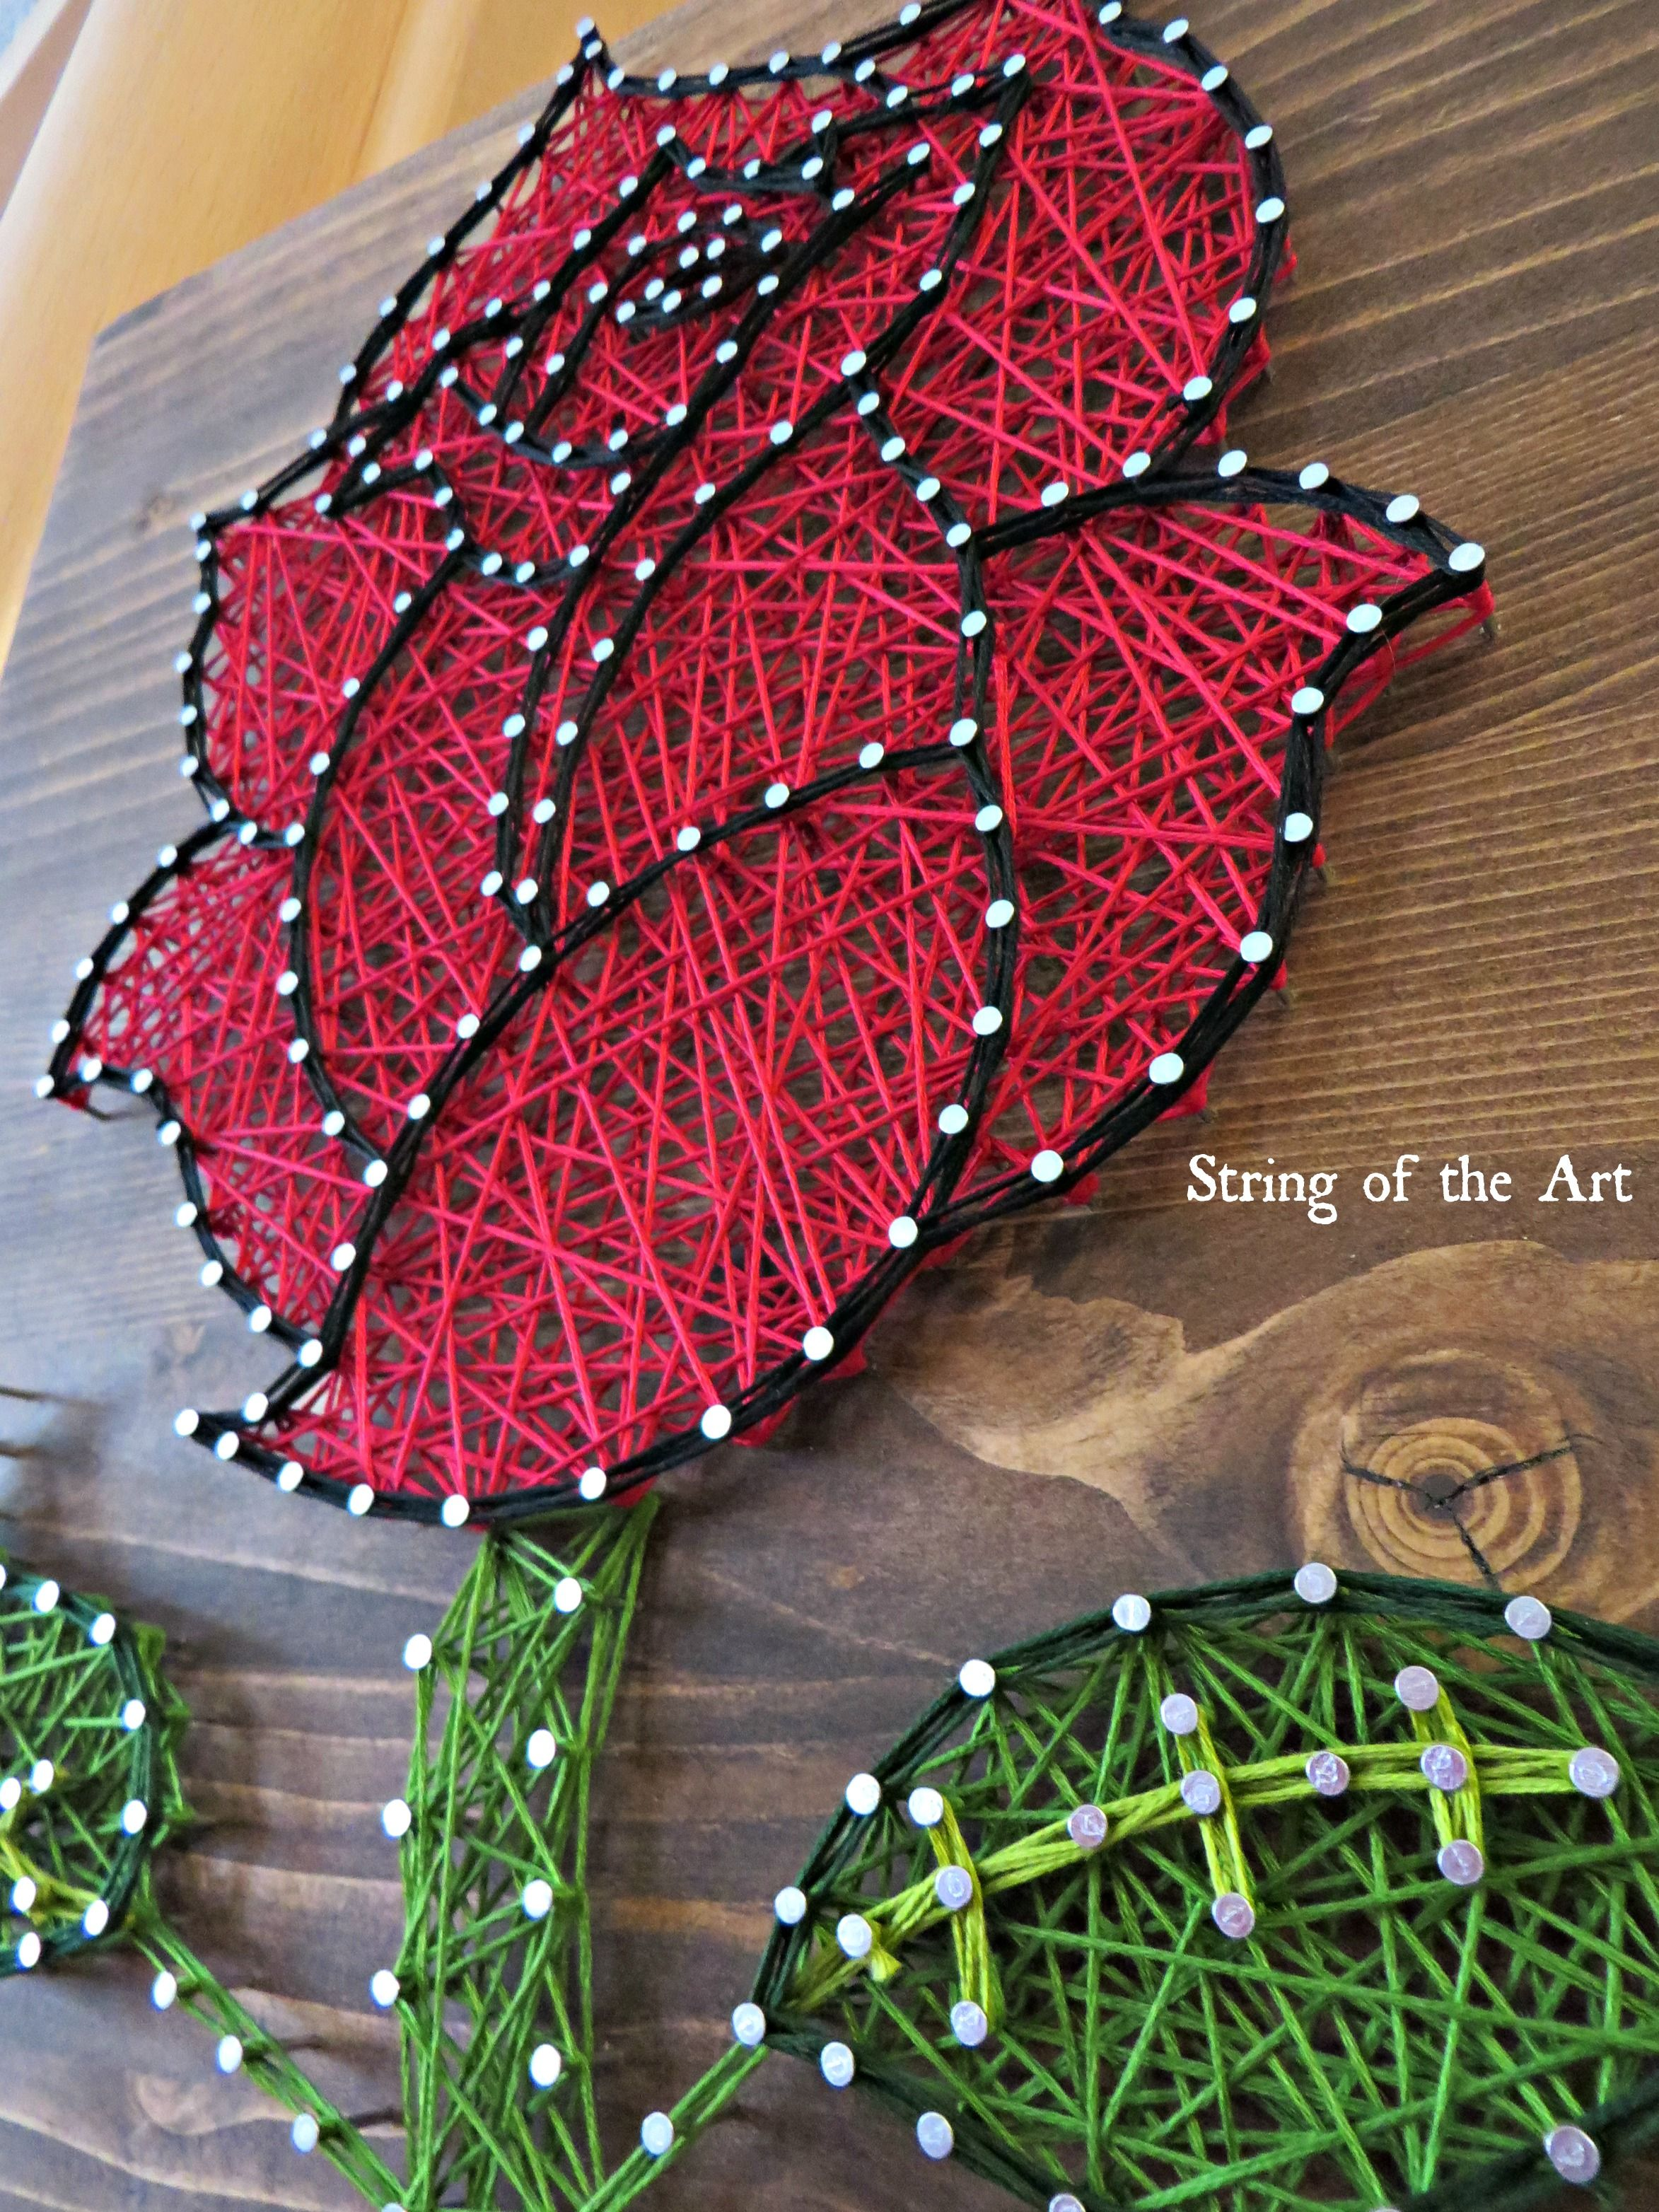 String art craft kit - Diy String Art Kit Rose Rose String Art Rose Crafts Kit Rose Decor Diy Kit W String Pattern Nails Instructions Stained Wood